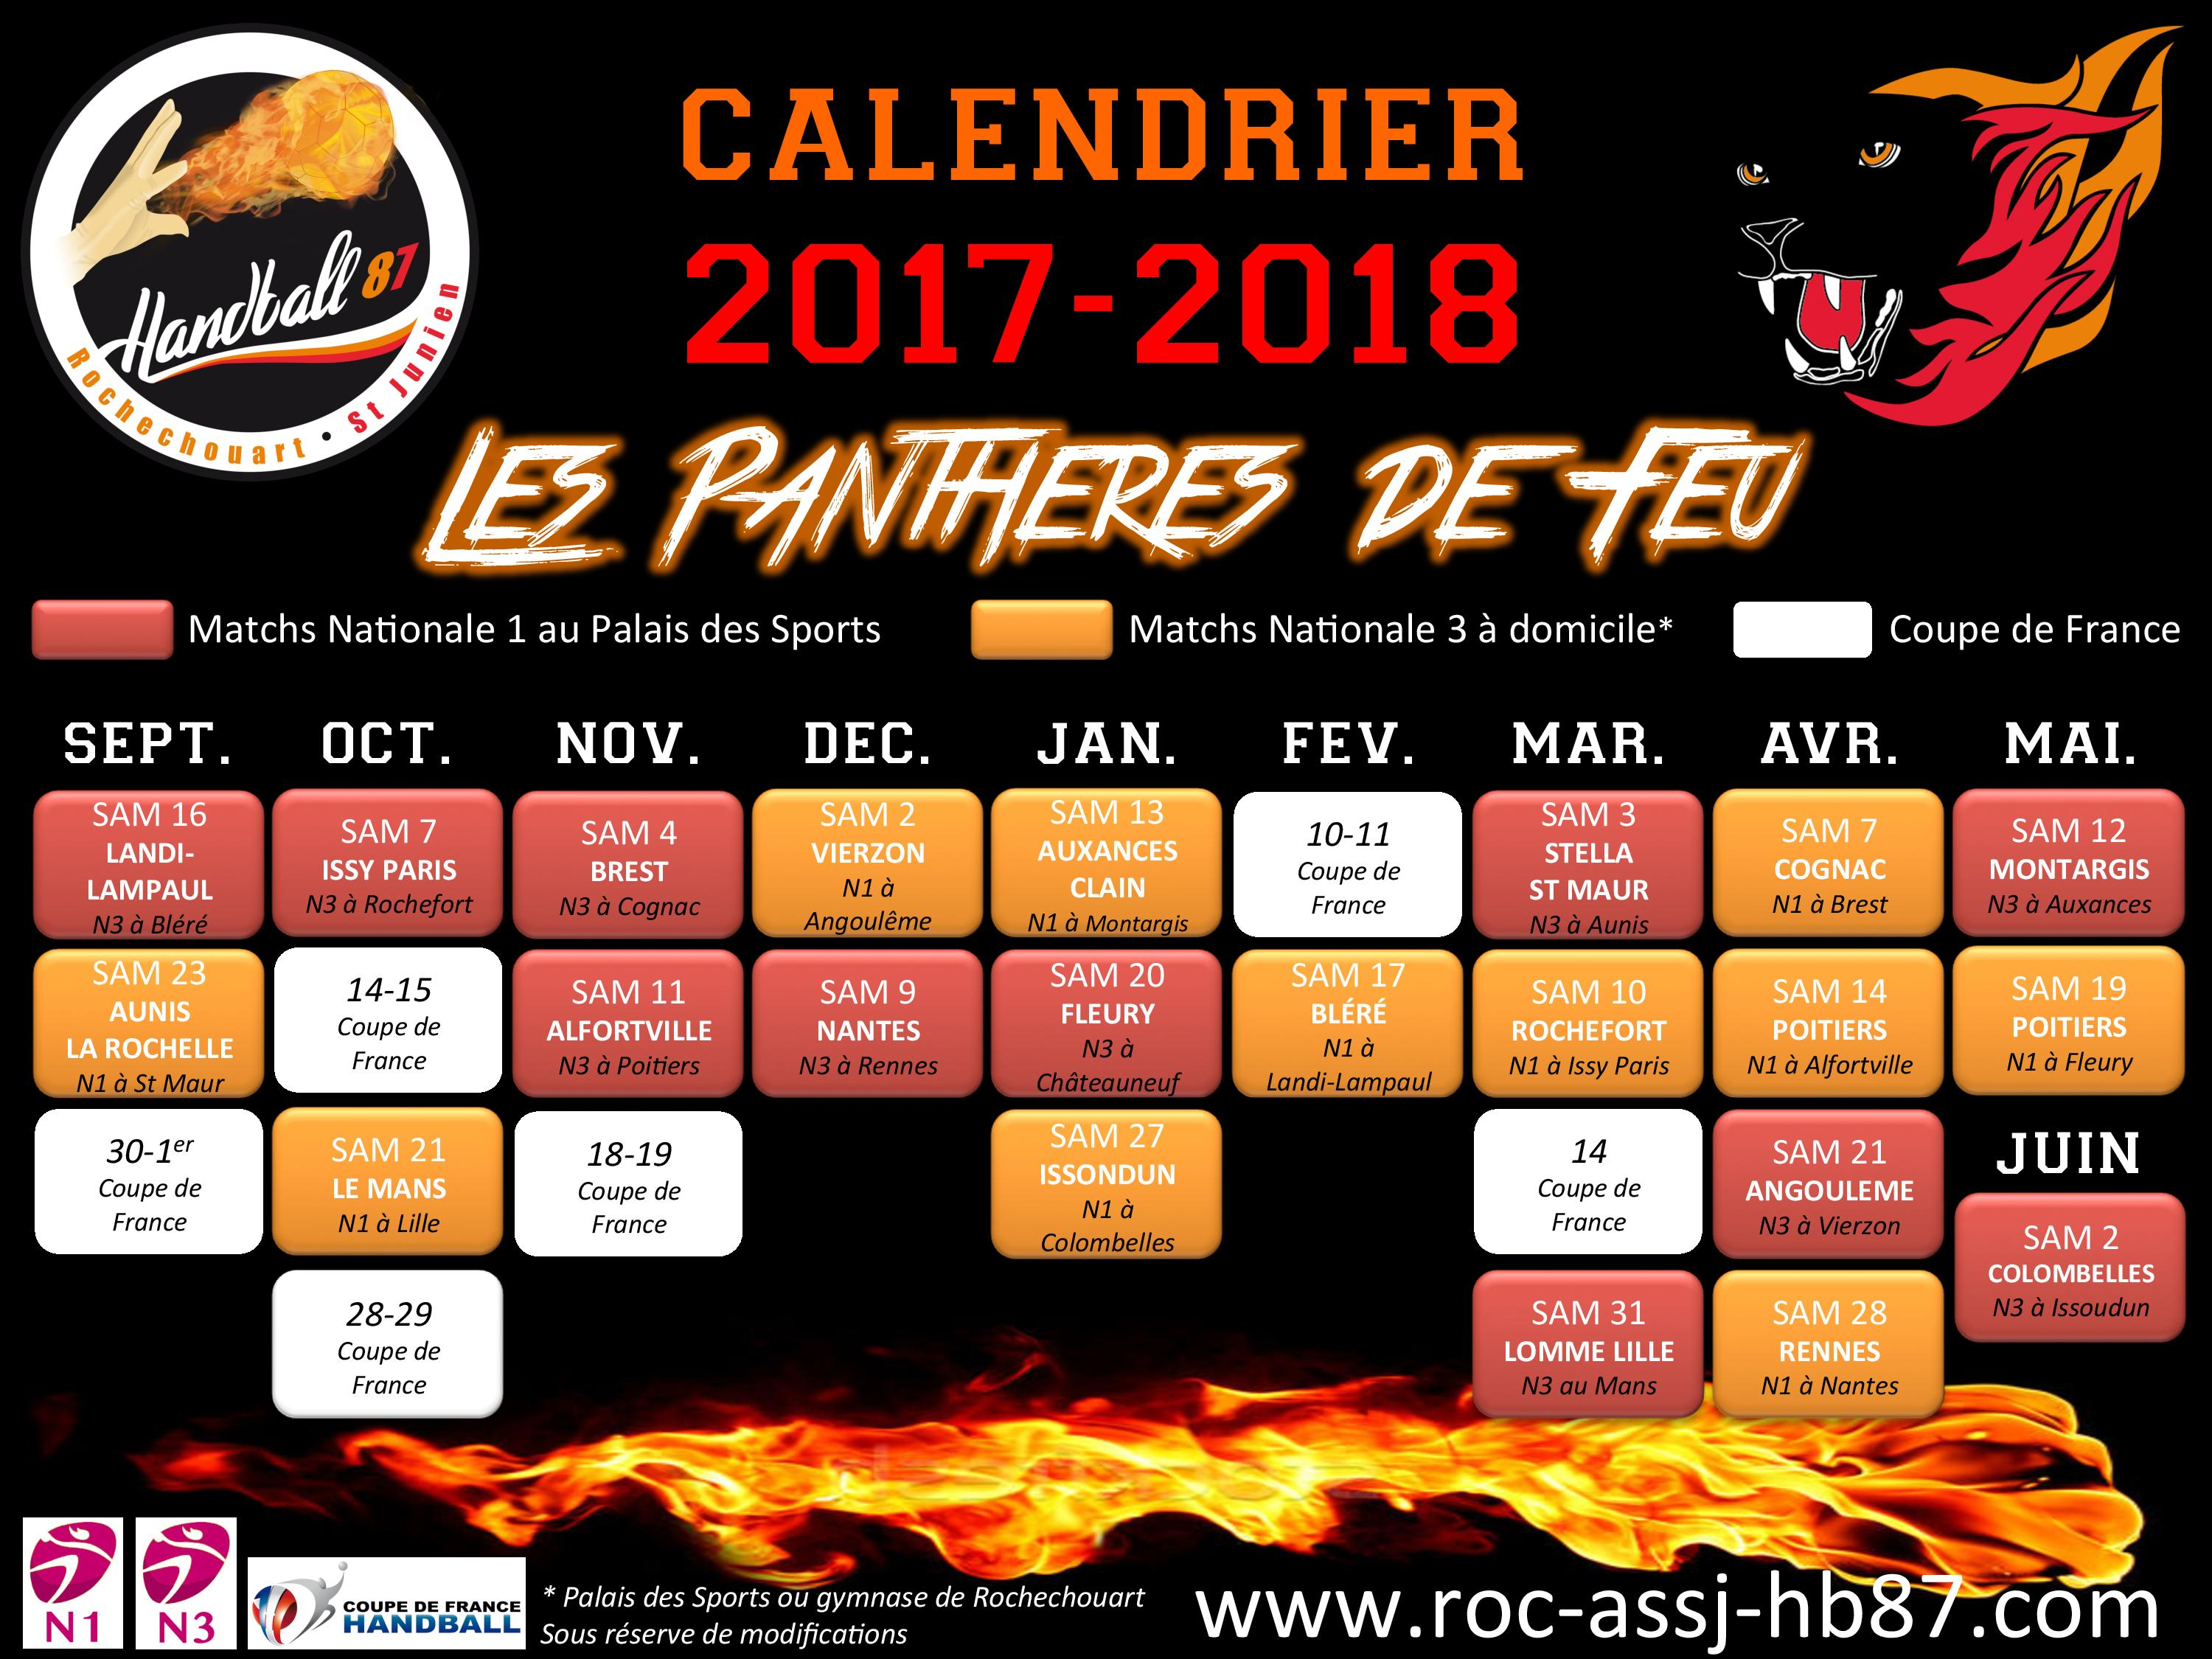 flyer-calendrier 17-18-page-001